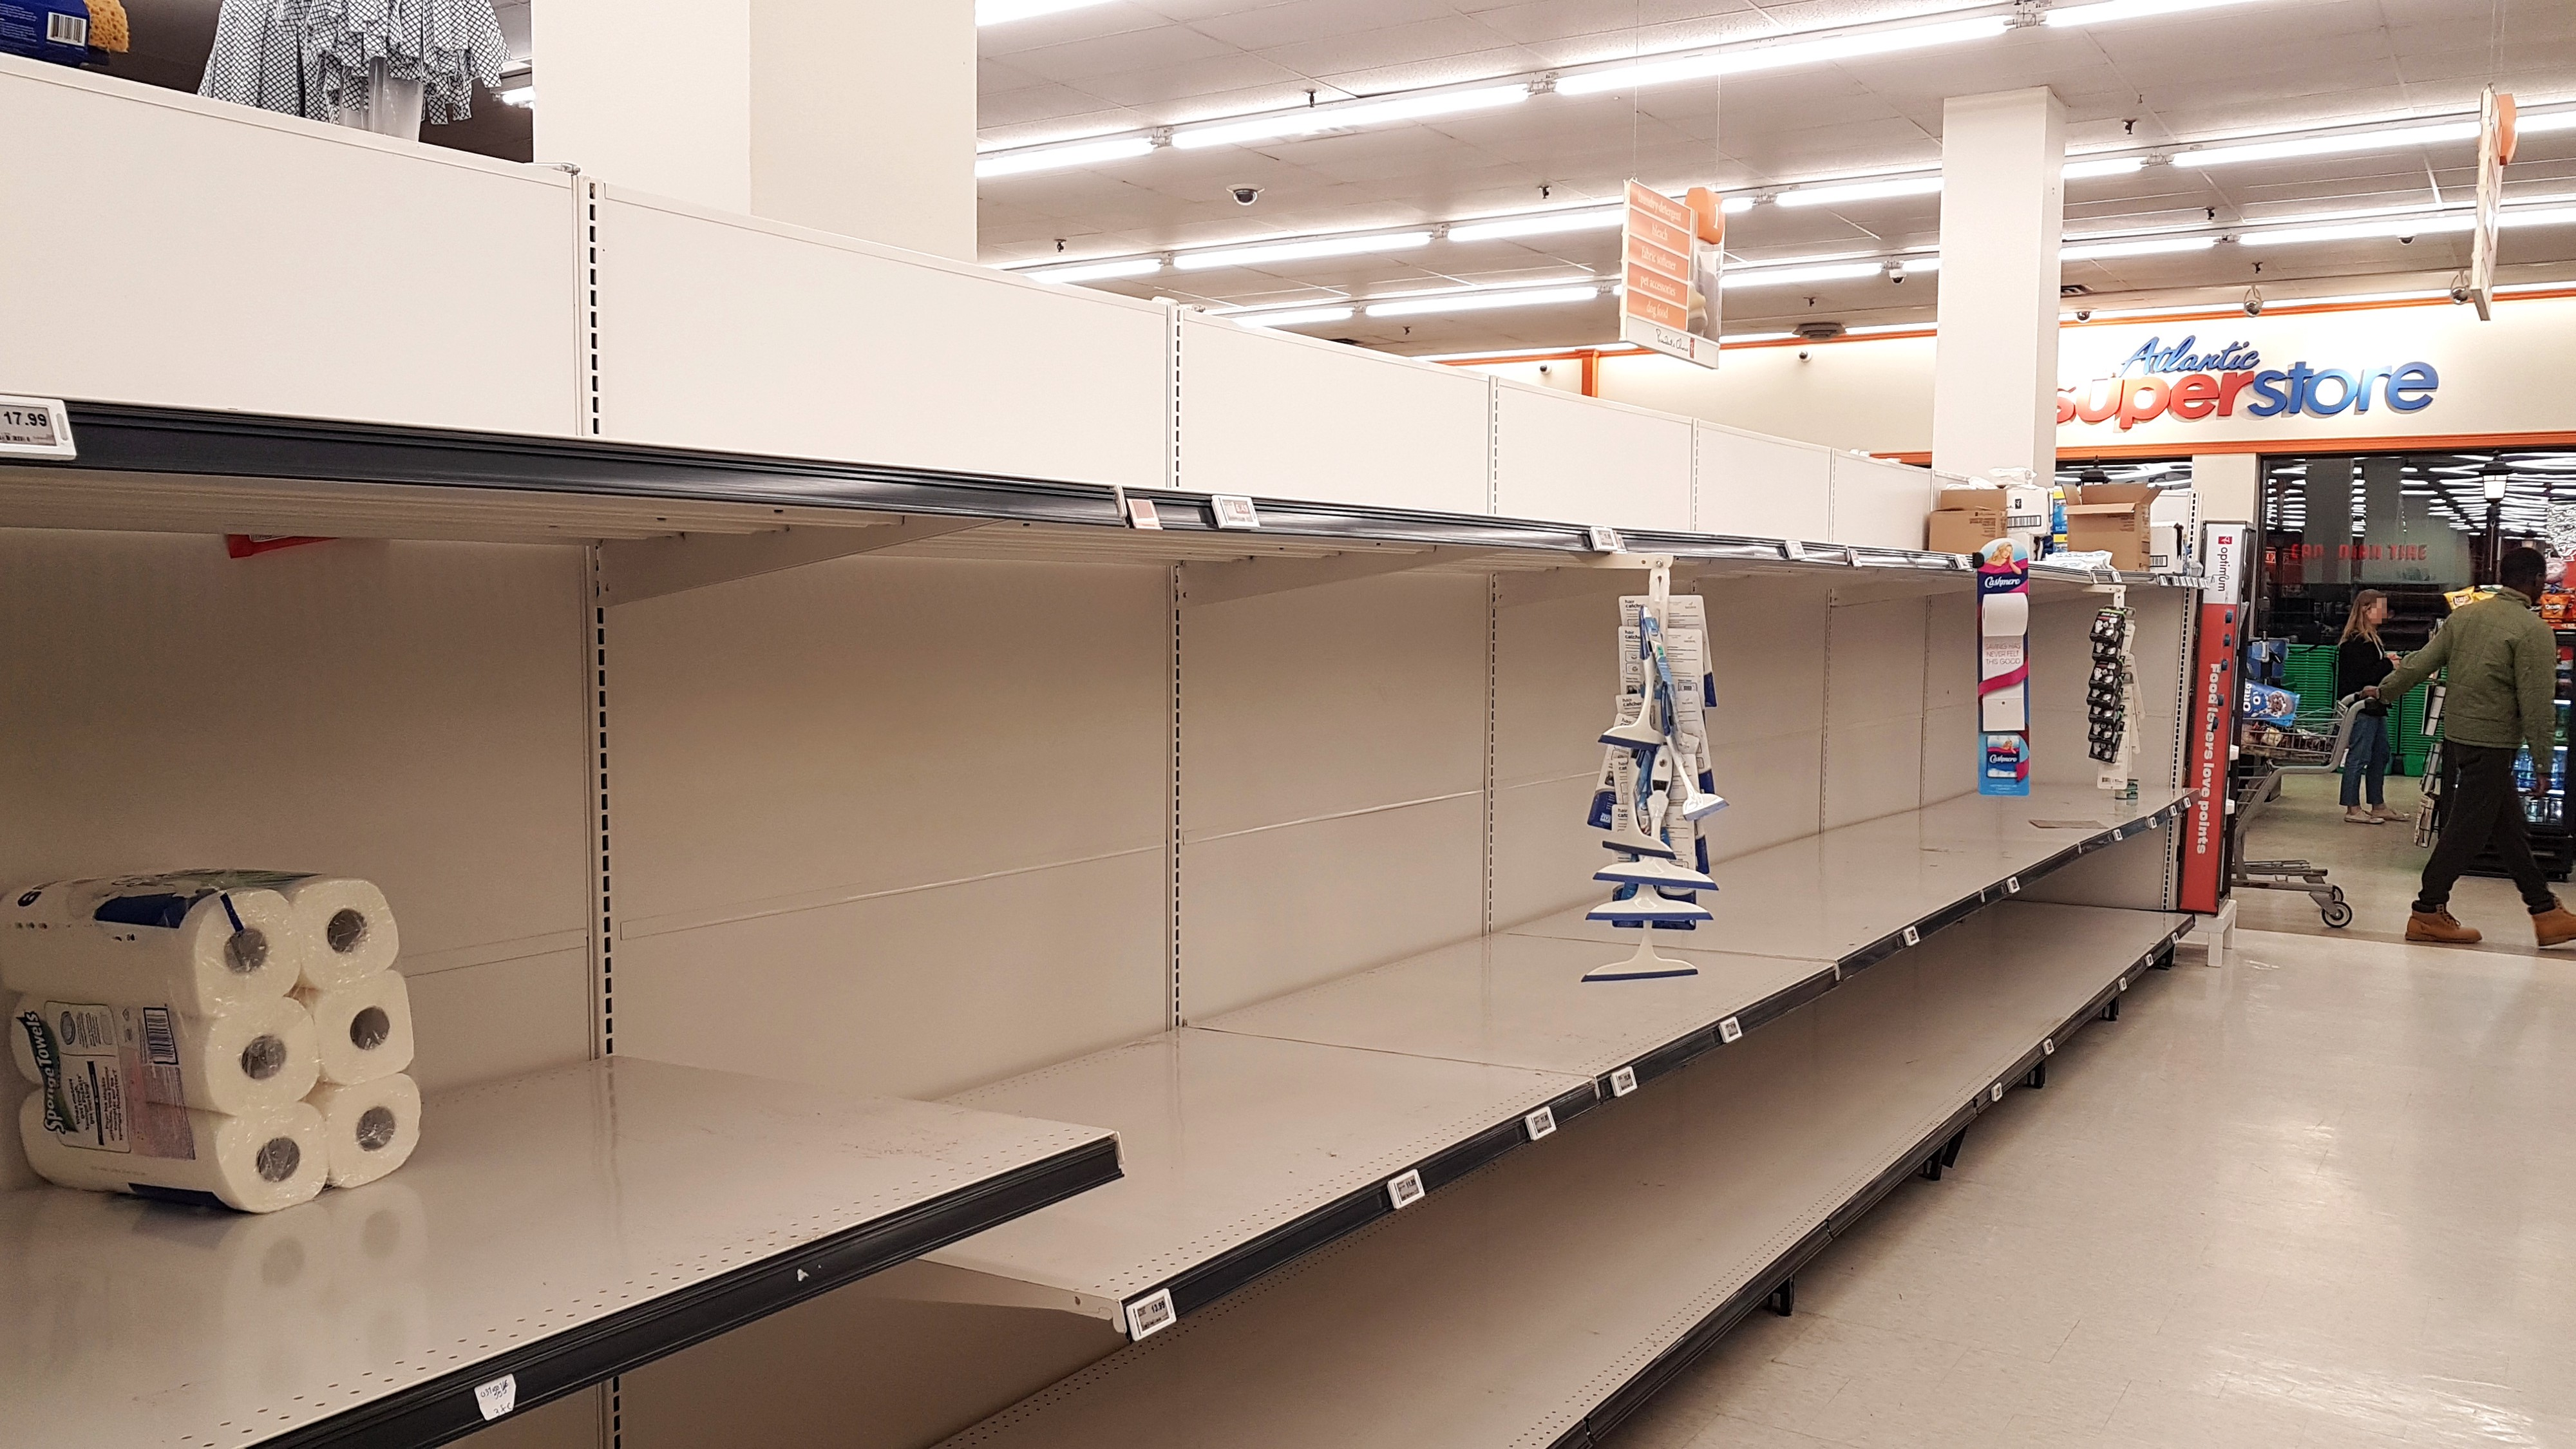 Empty shelves in the toilet paper aisle of an Atlantic Superstore supermarket of Halifax, Nova Scotia, Canada, on 12 March 20